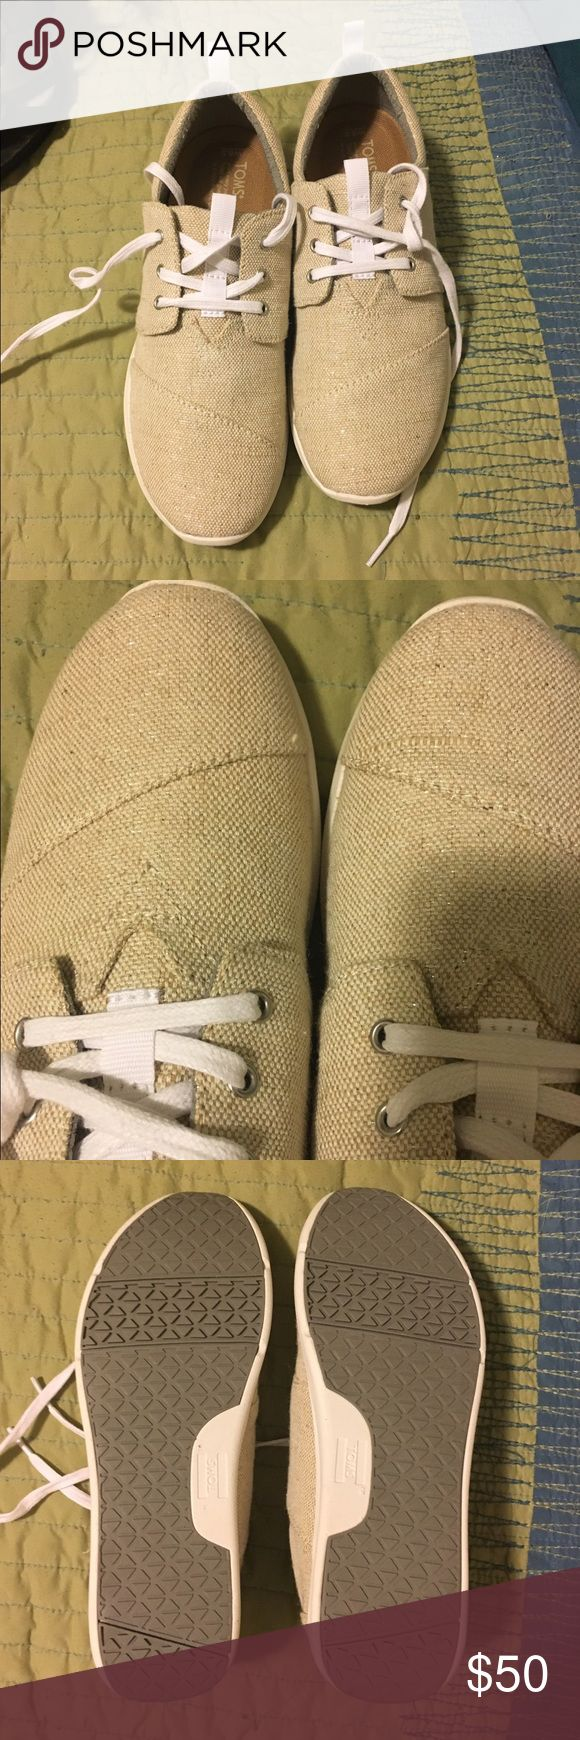 Brand New Toms Del Rey Natural metallic linen 8.5 This is a brand new without the box pair of women's Toms Del Rey size 8.5. Color is a light beige with a shimmer finish. Smoke free home. Never worn out of the house! TOMS Shoes Sneakers